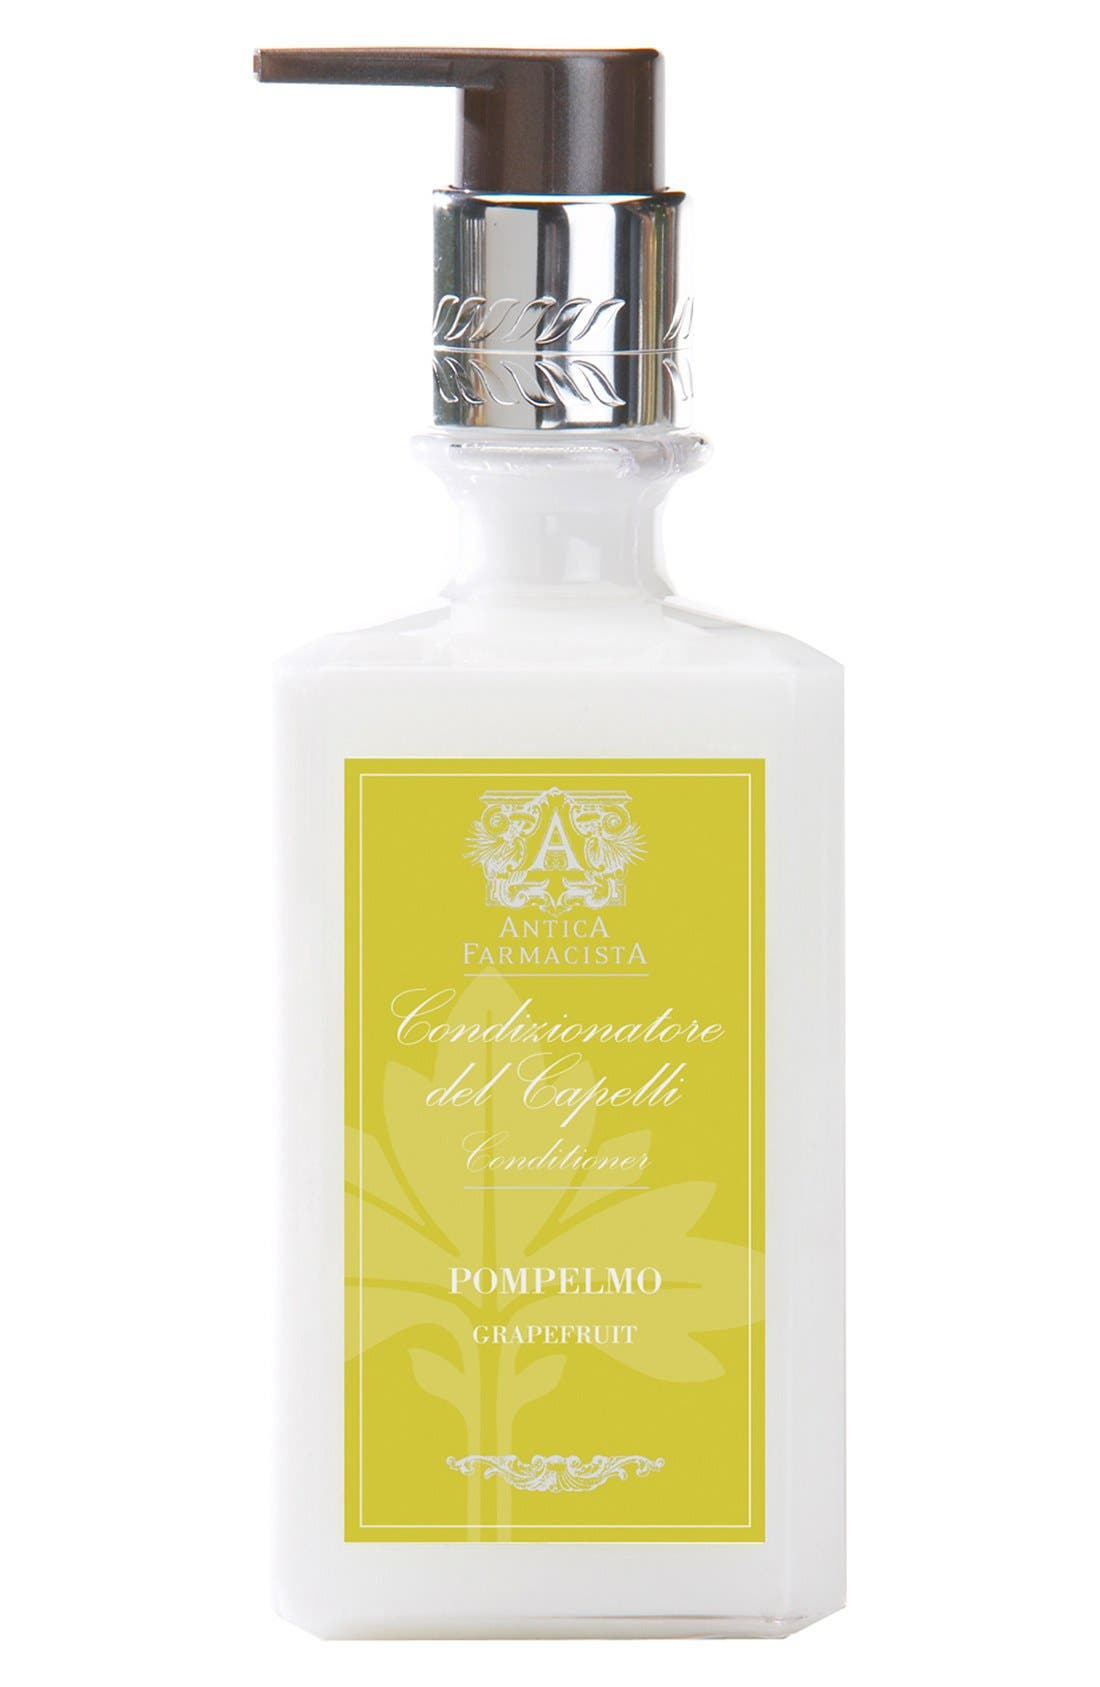 Antica Farmacista Grapefruit Hair Conditioner